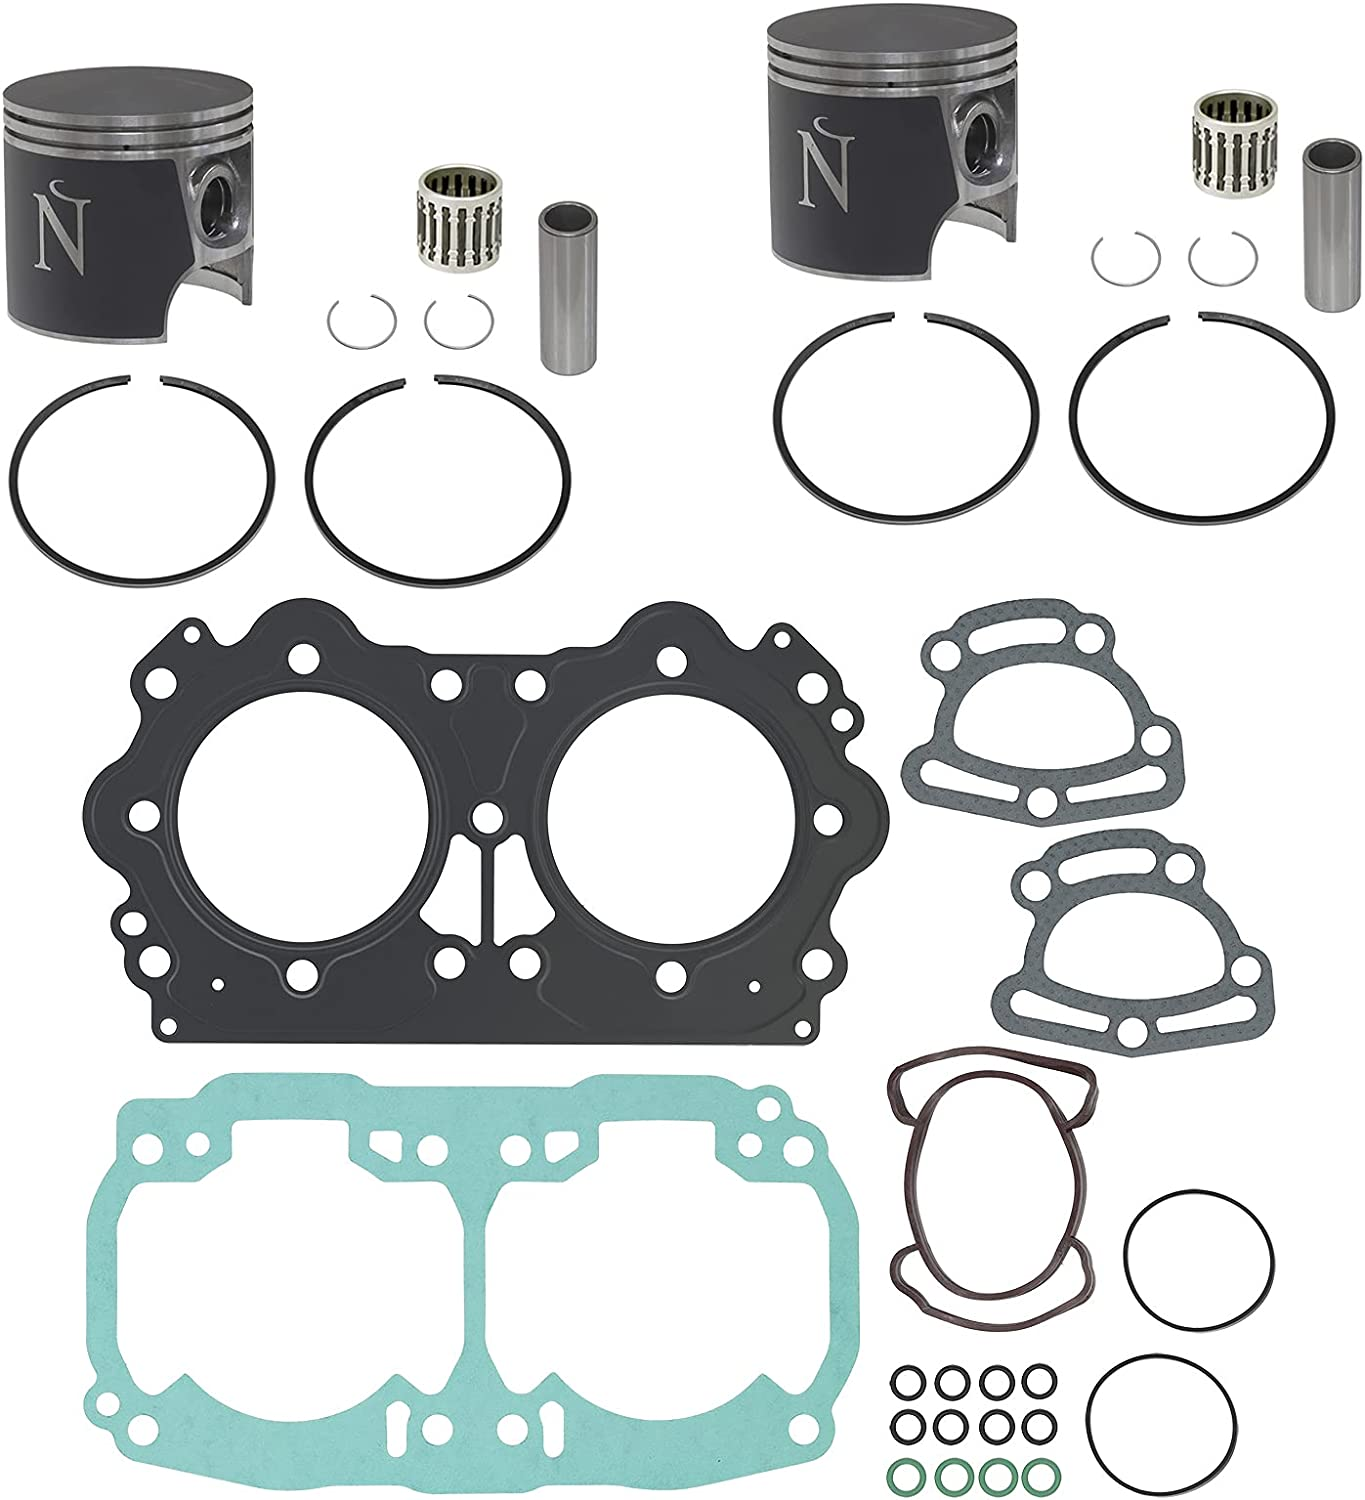 Namura NW-10006K1 Top End High quality new Repair Kit fits Sea-Doo for Max 72% OFF 2001-200